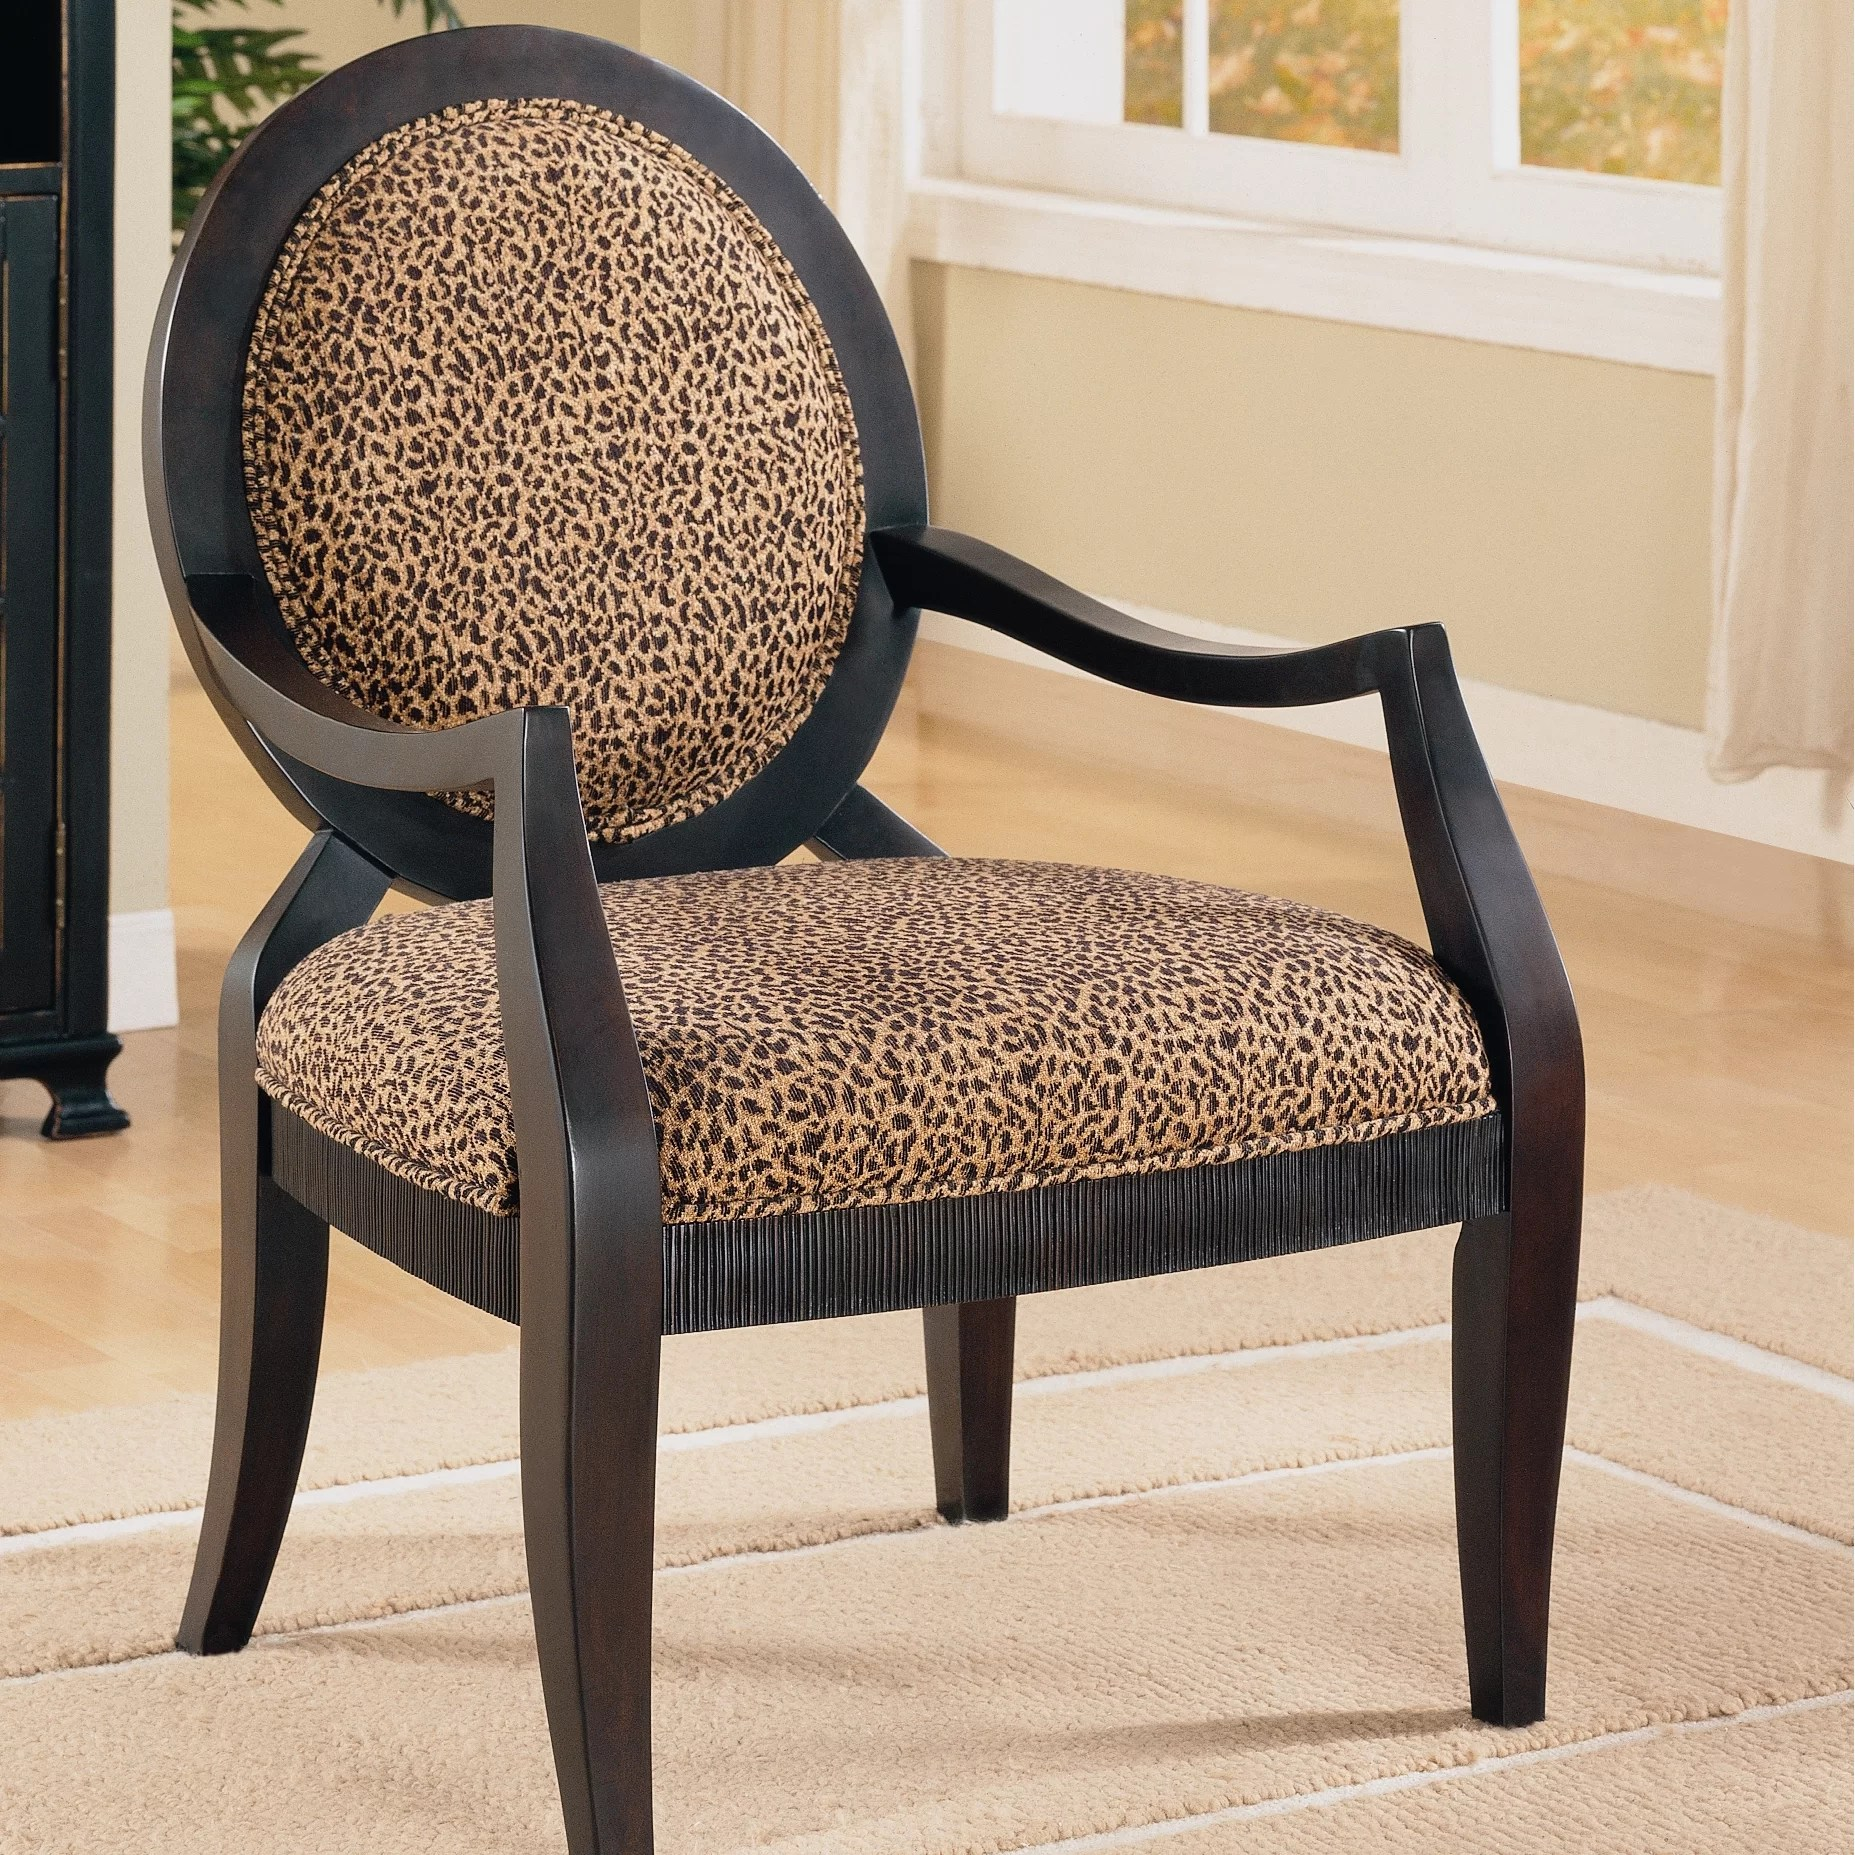 animal print accent chairs staples turcotte chair house of hampton leopard distressed fabric arm